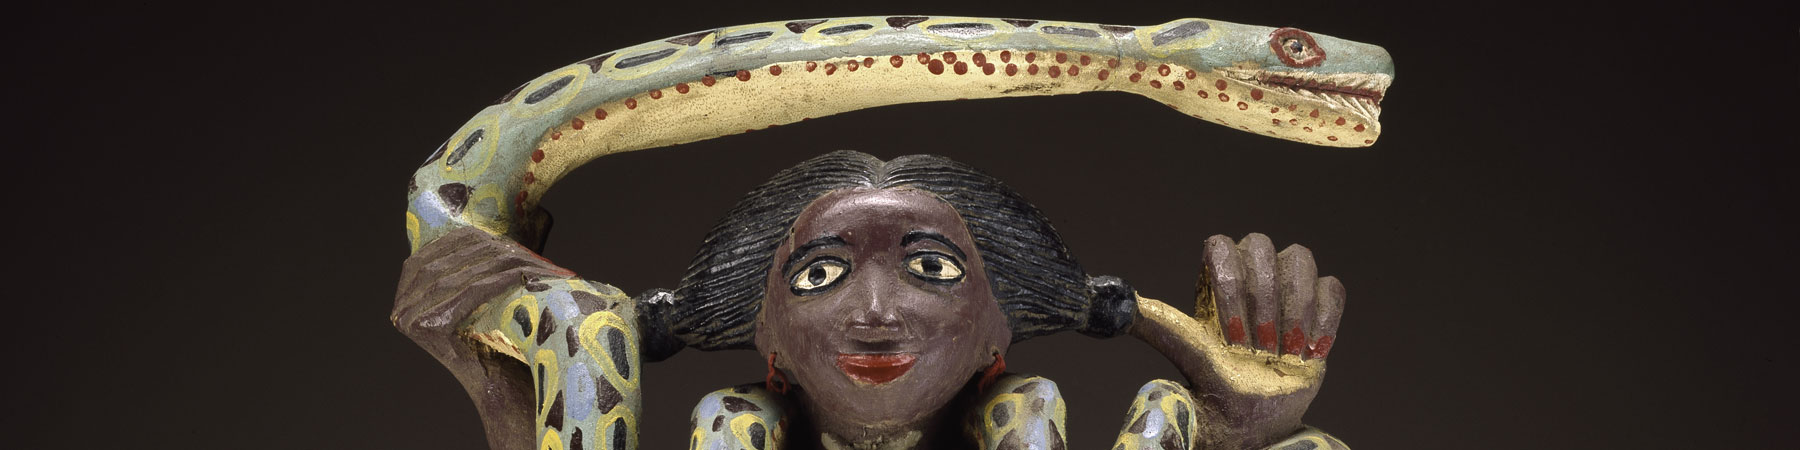 IN THE MUSEUM: Currents: Water in African Art